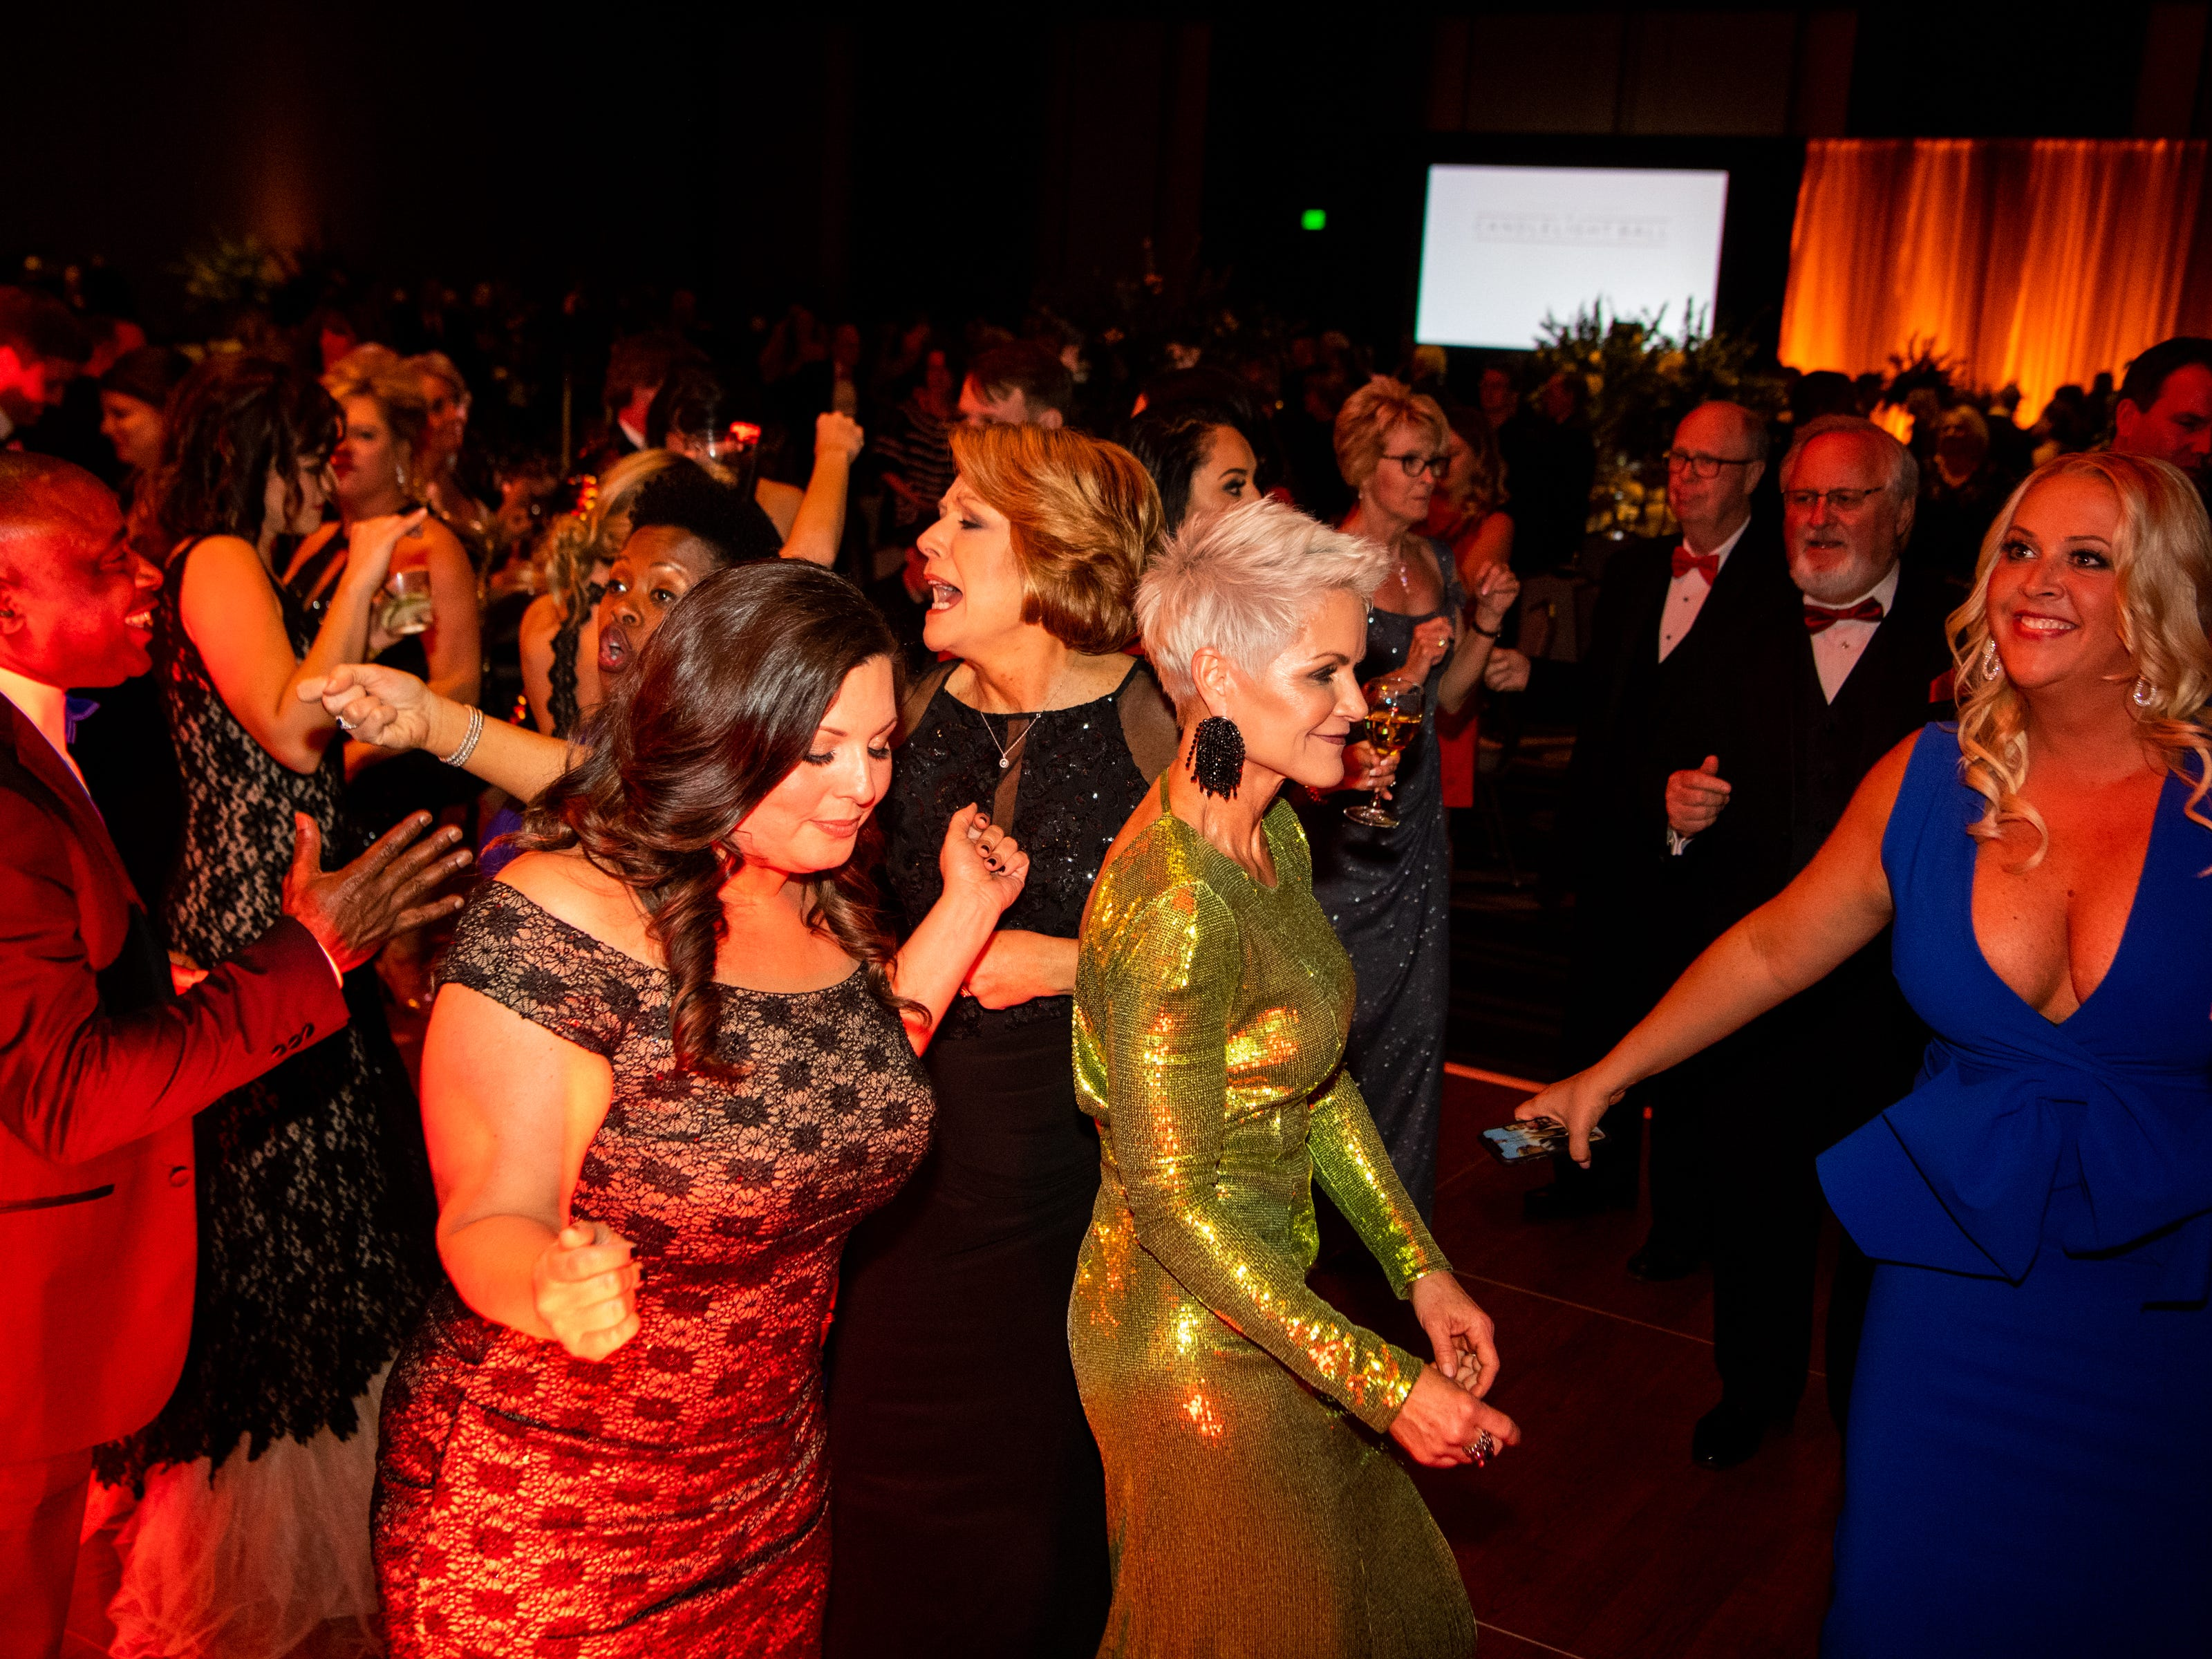 People begin to dance during Austin Peay State University's annual Candlelight Ball at the Omni Nashville Hotel Saturday, March 16, 2019, in Nashville, Tenn.